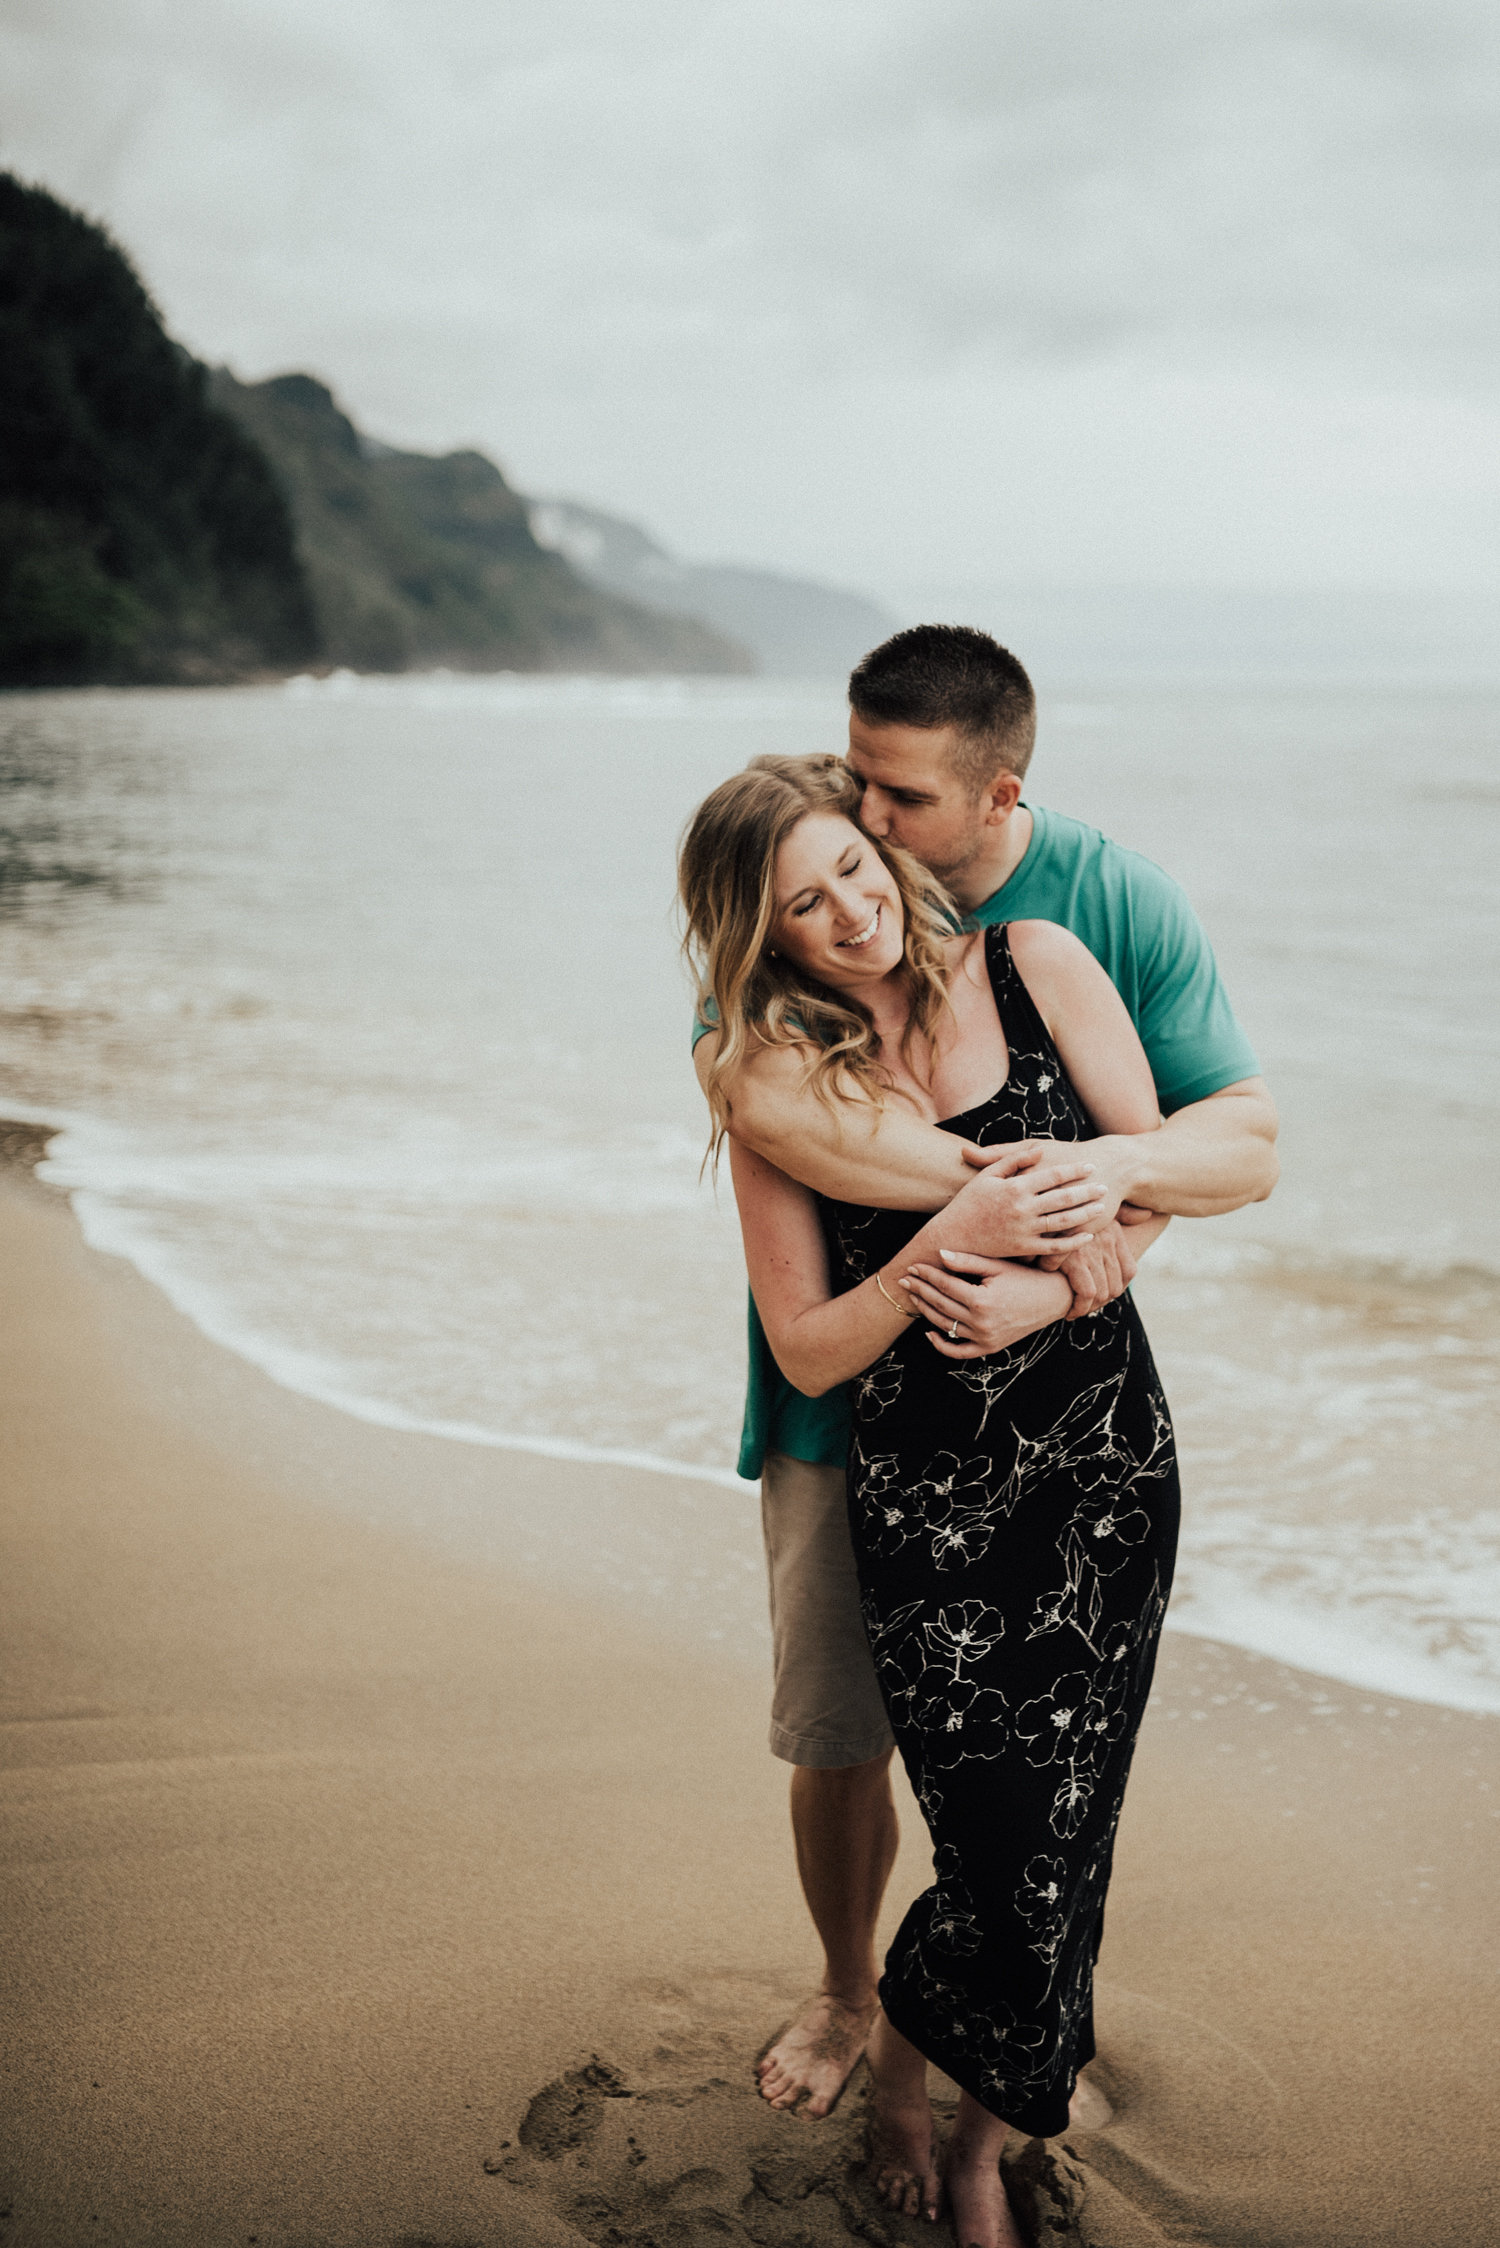 Kauai-Hawaii-engagement-photos-13.jpg